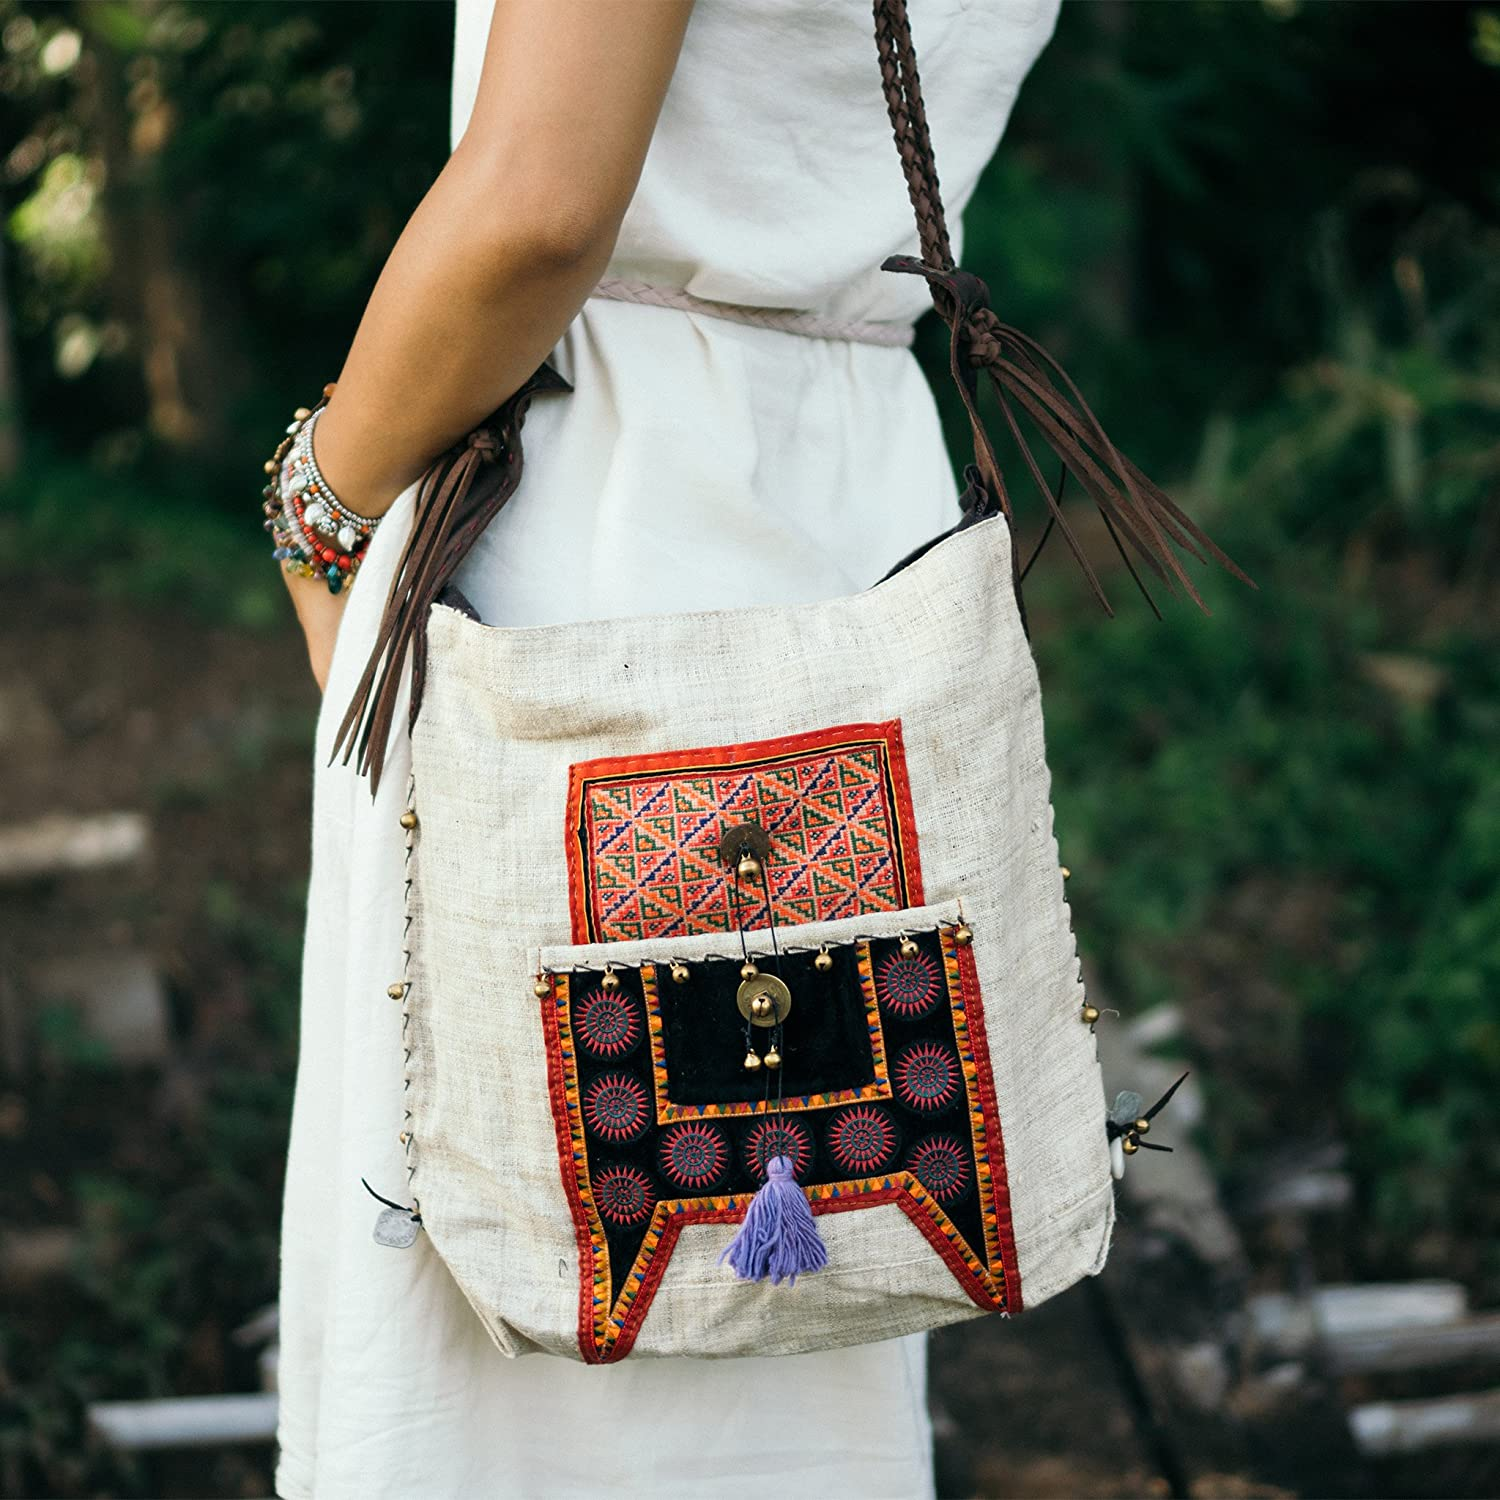 Changnoi Handcrafted Hippie Crossbody Bag with Hmong Hill Tribe Embroidered with Leather Strap, Fair Trade Boho Sling Bag for Women